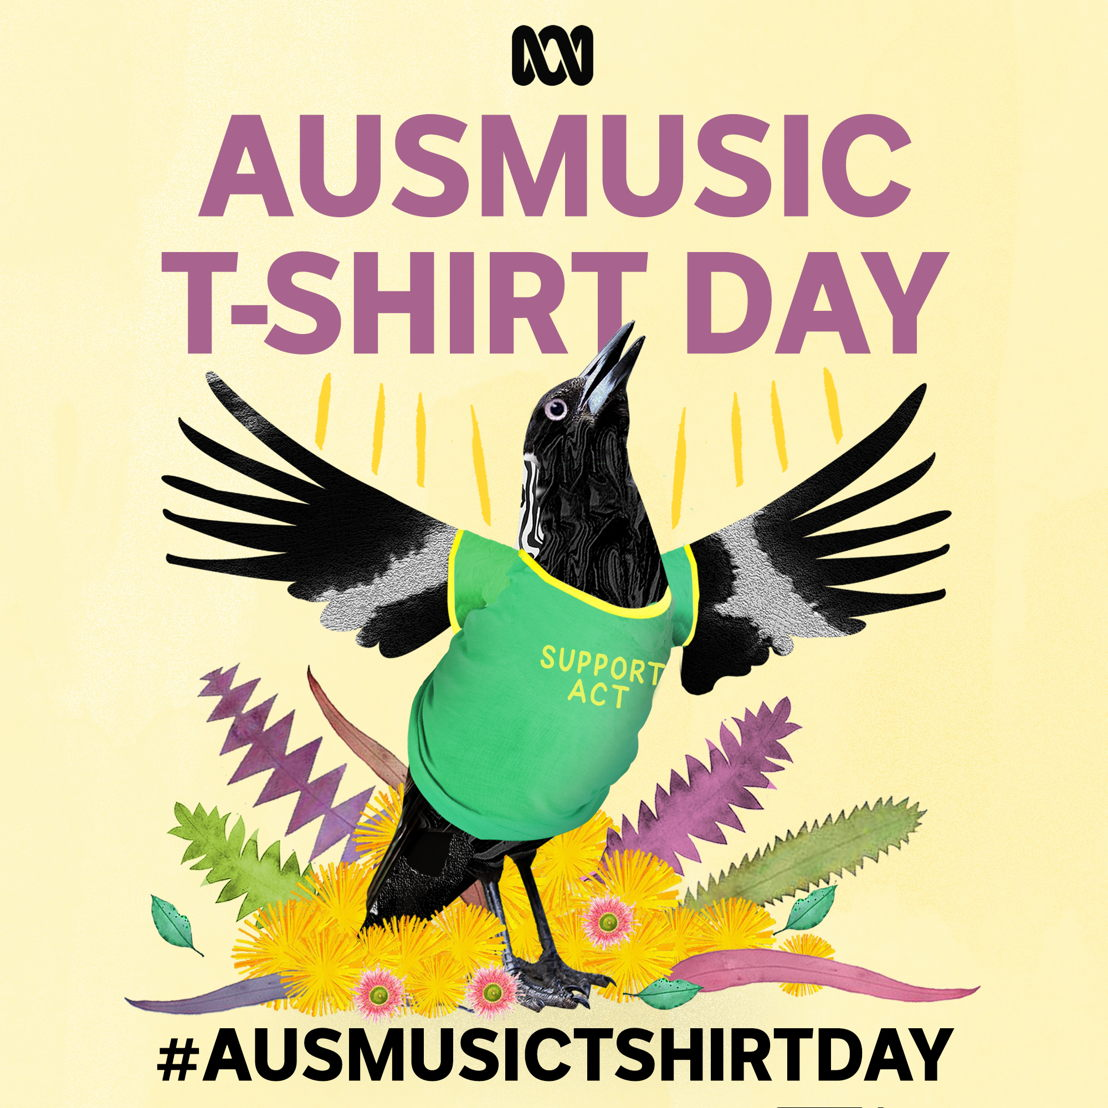 #AusmusicTshirtDay on 3 November